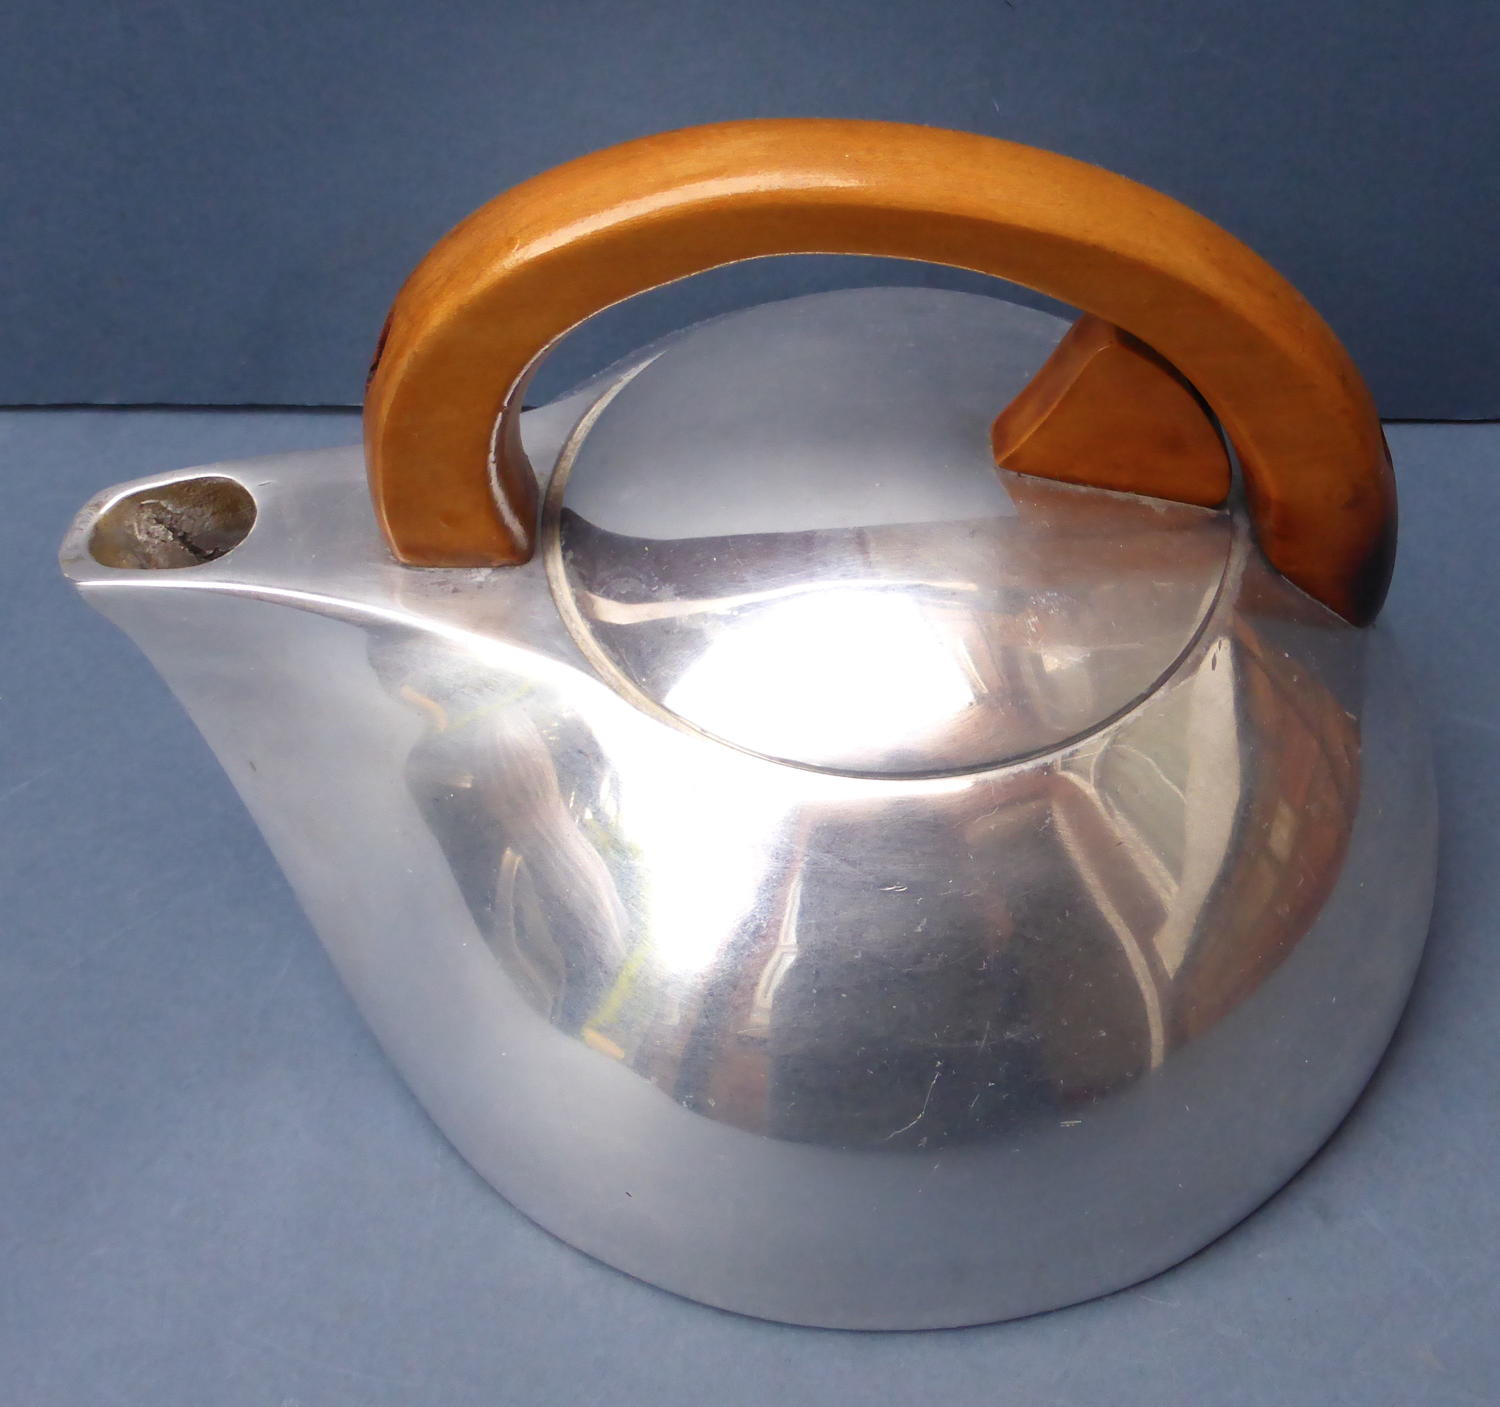 Original Picquot Ware Stove Top Kettle